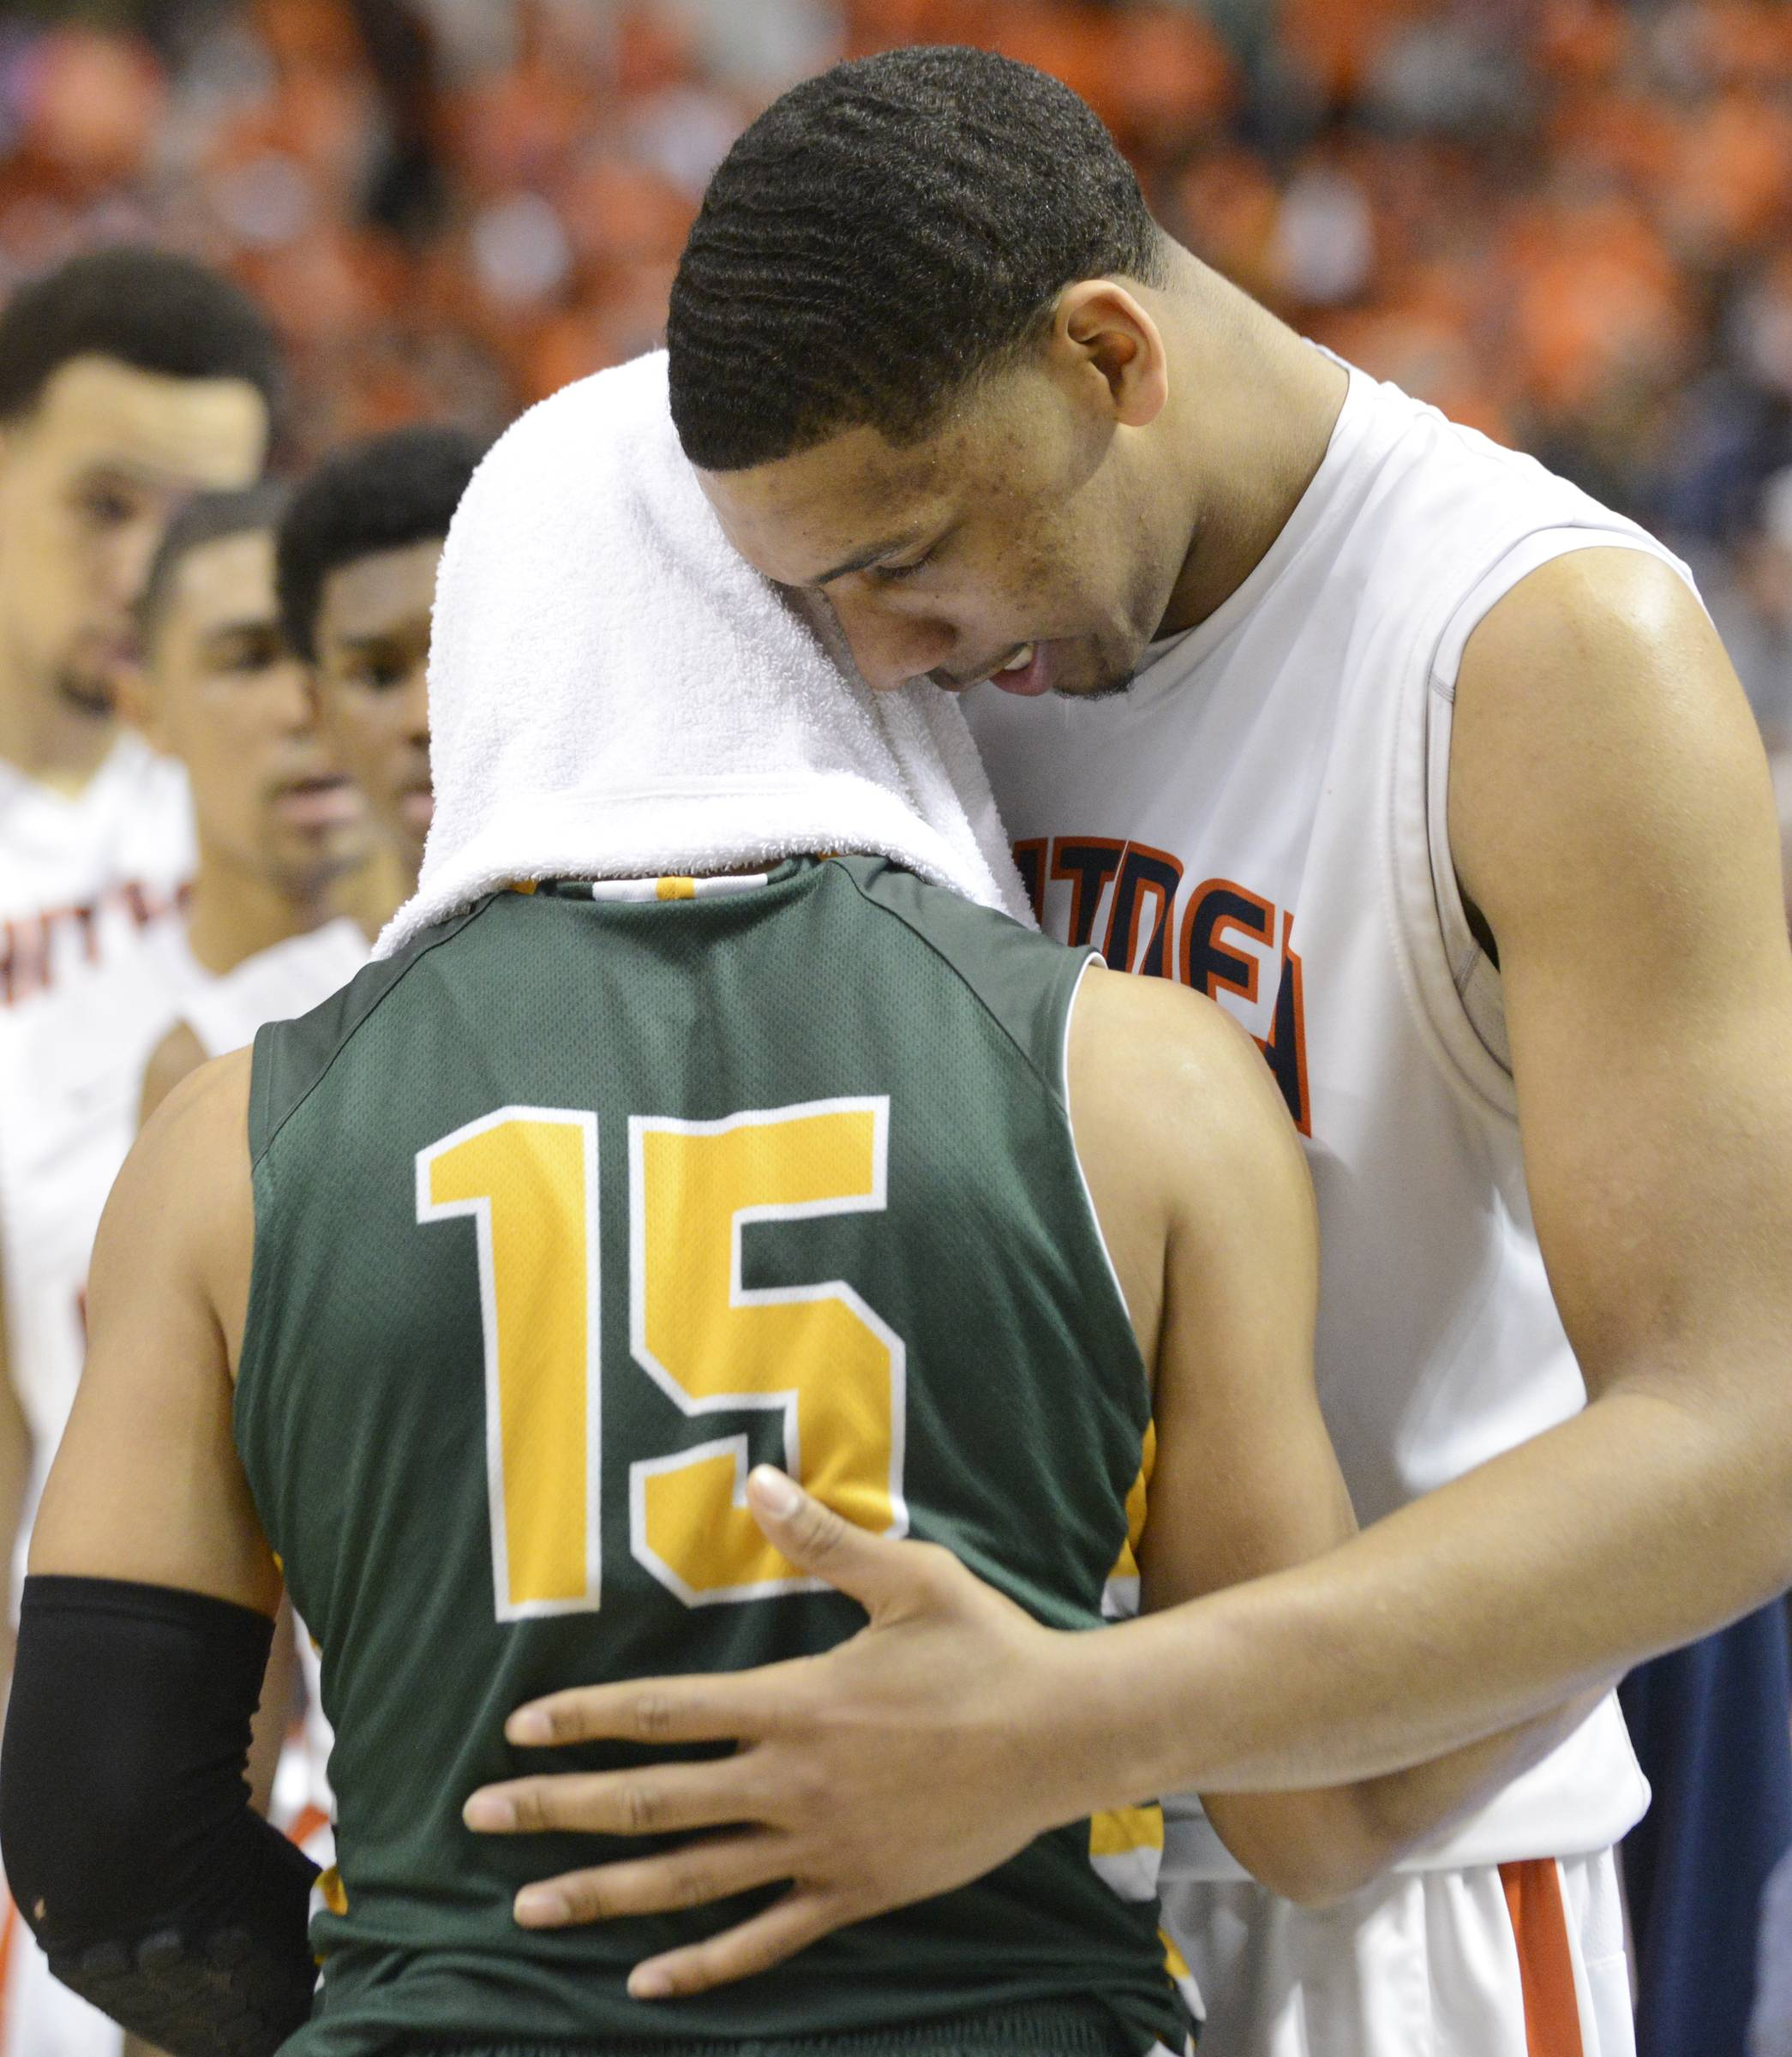 John Starks/jstarks@dailyherald.com  Stevenson's Jalen Brunson and Whitney Young's Jahlil Okafor, right, talk after Whitney Young's victory in the Class 4A state semifinals at Carver Arena in Peoria on Friday.